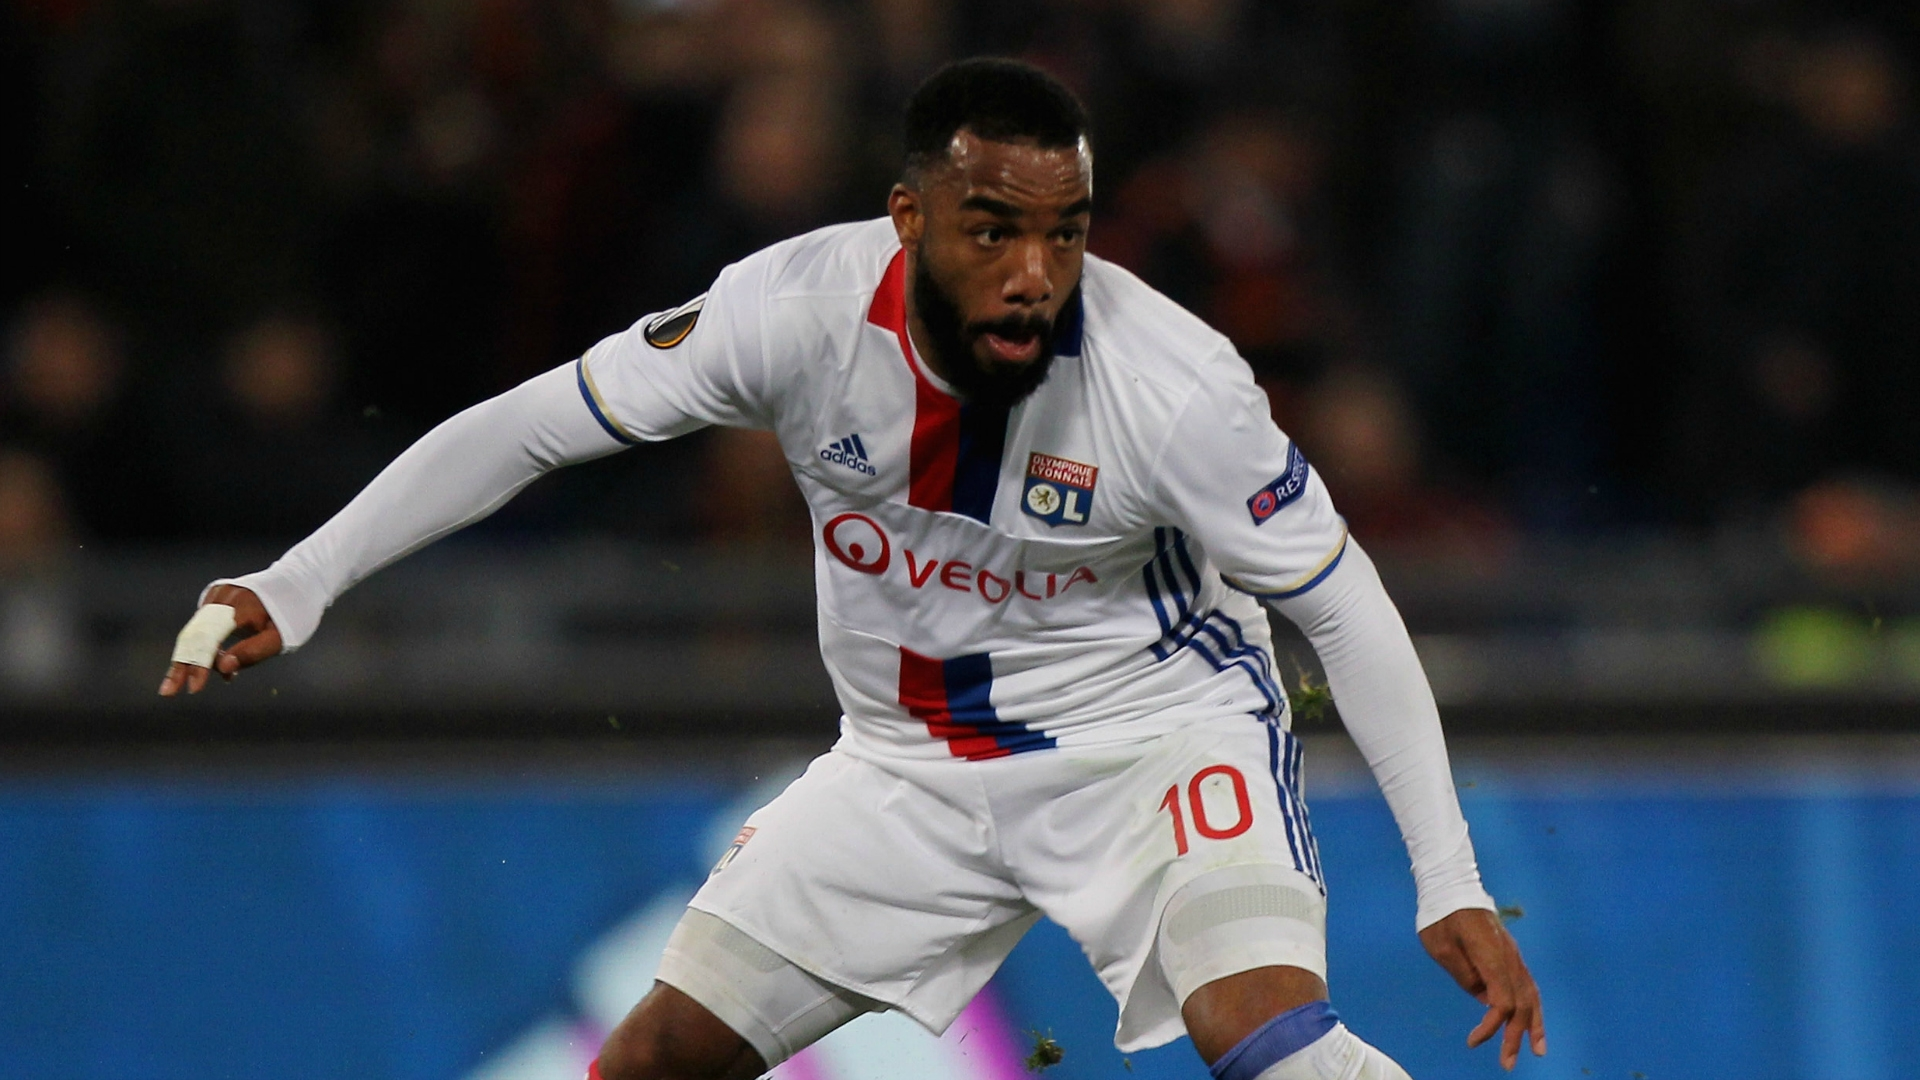 It remains to be seen if some of the other clubs who have been scouting the player will submit an offer to Lyon now that Atletico is out of the picture.